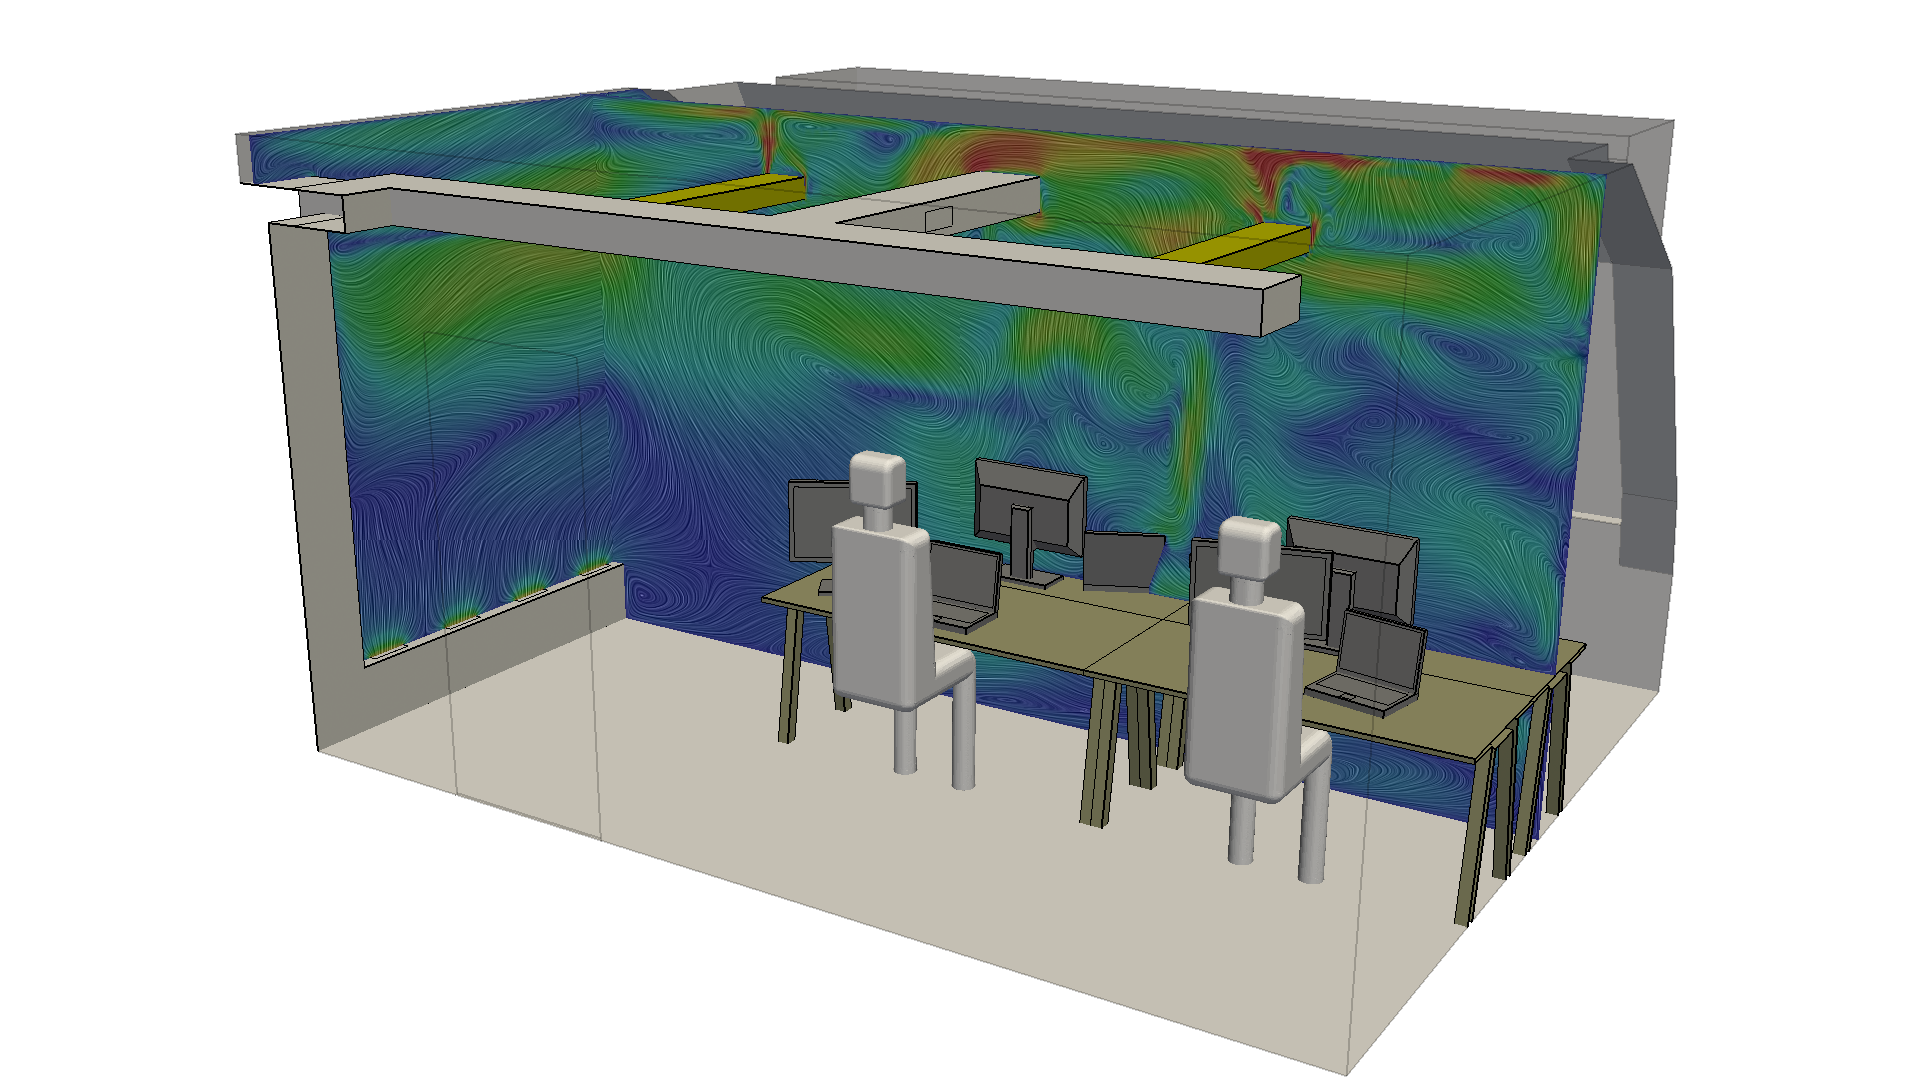 SimScale Announces a Free Webinar on Using Computational Fluid Dynamics for Air Conditioning Design